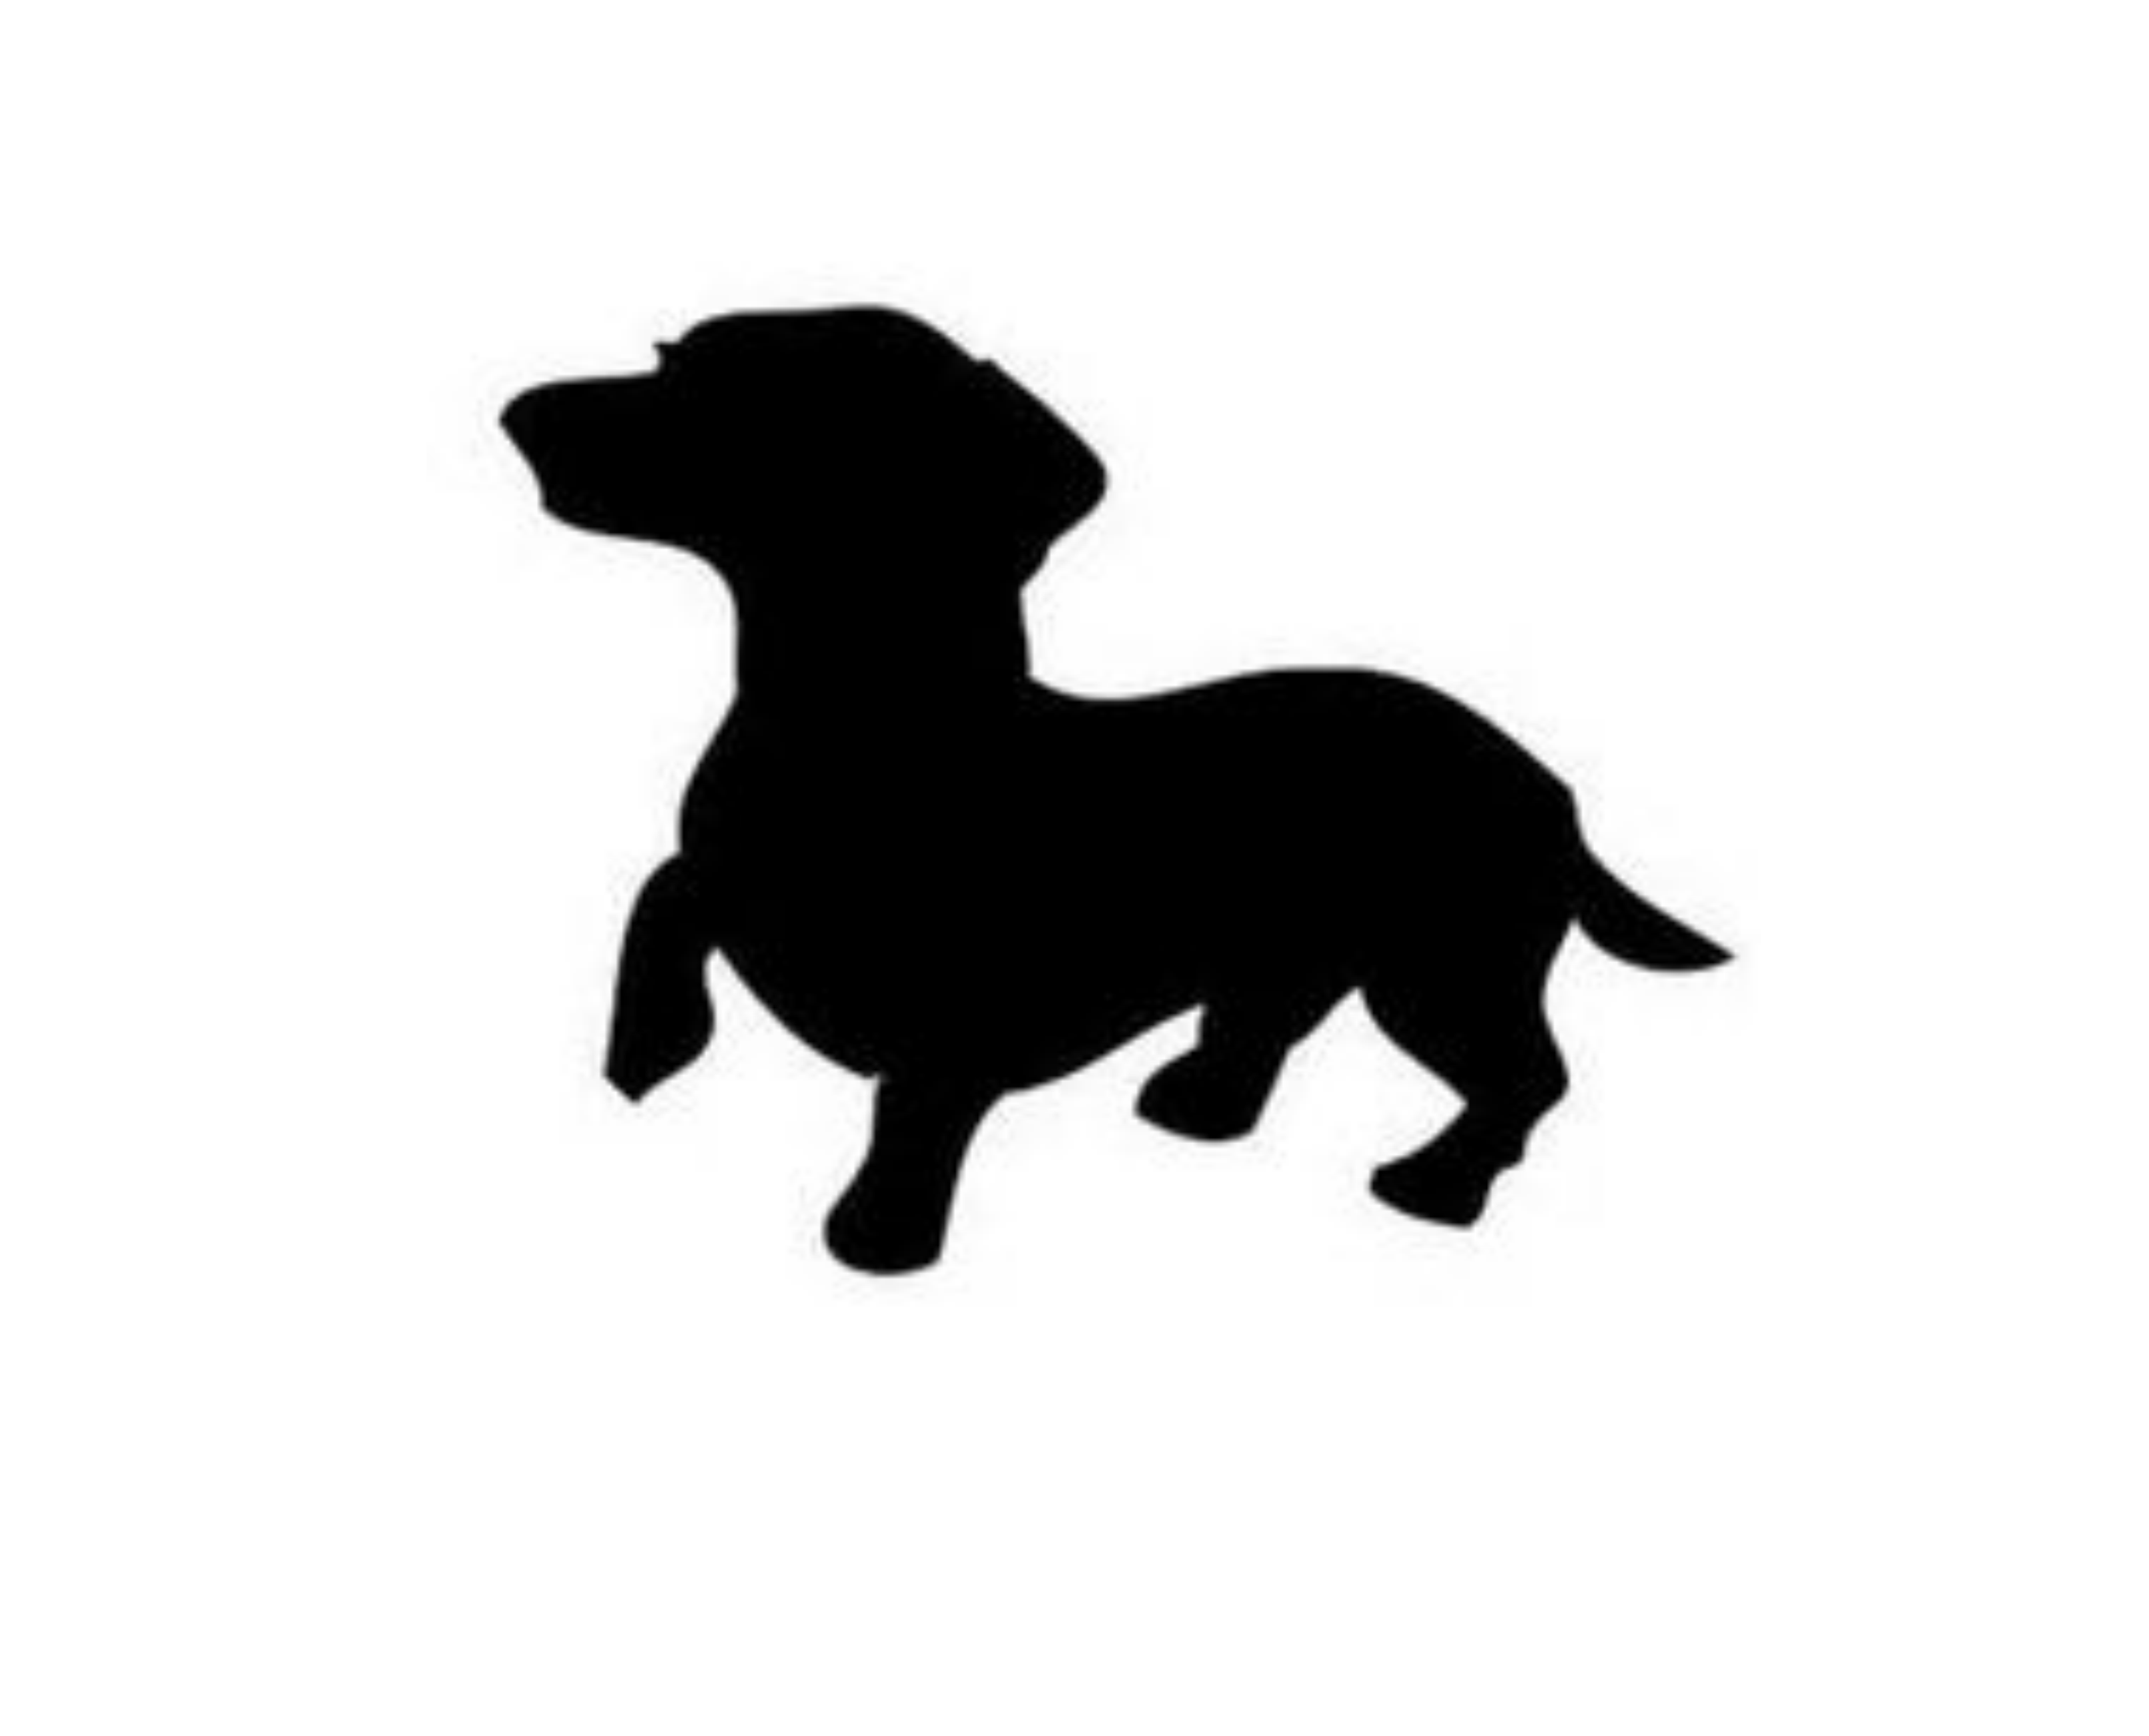 dachshund silhouette clip art dog cat clip art pet graphics rh pinterest com dachshund clipart free black and white dachshund clip art images